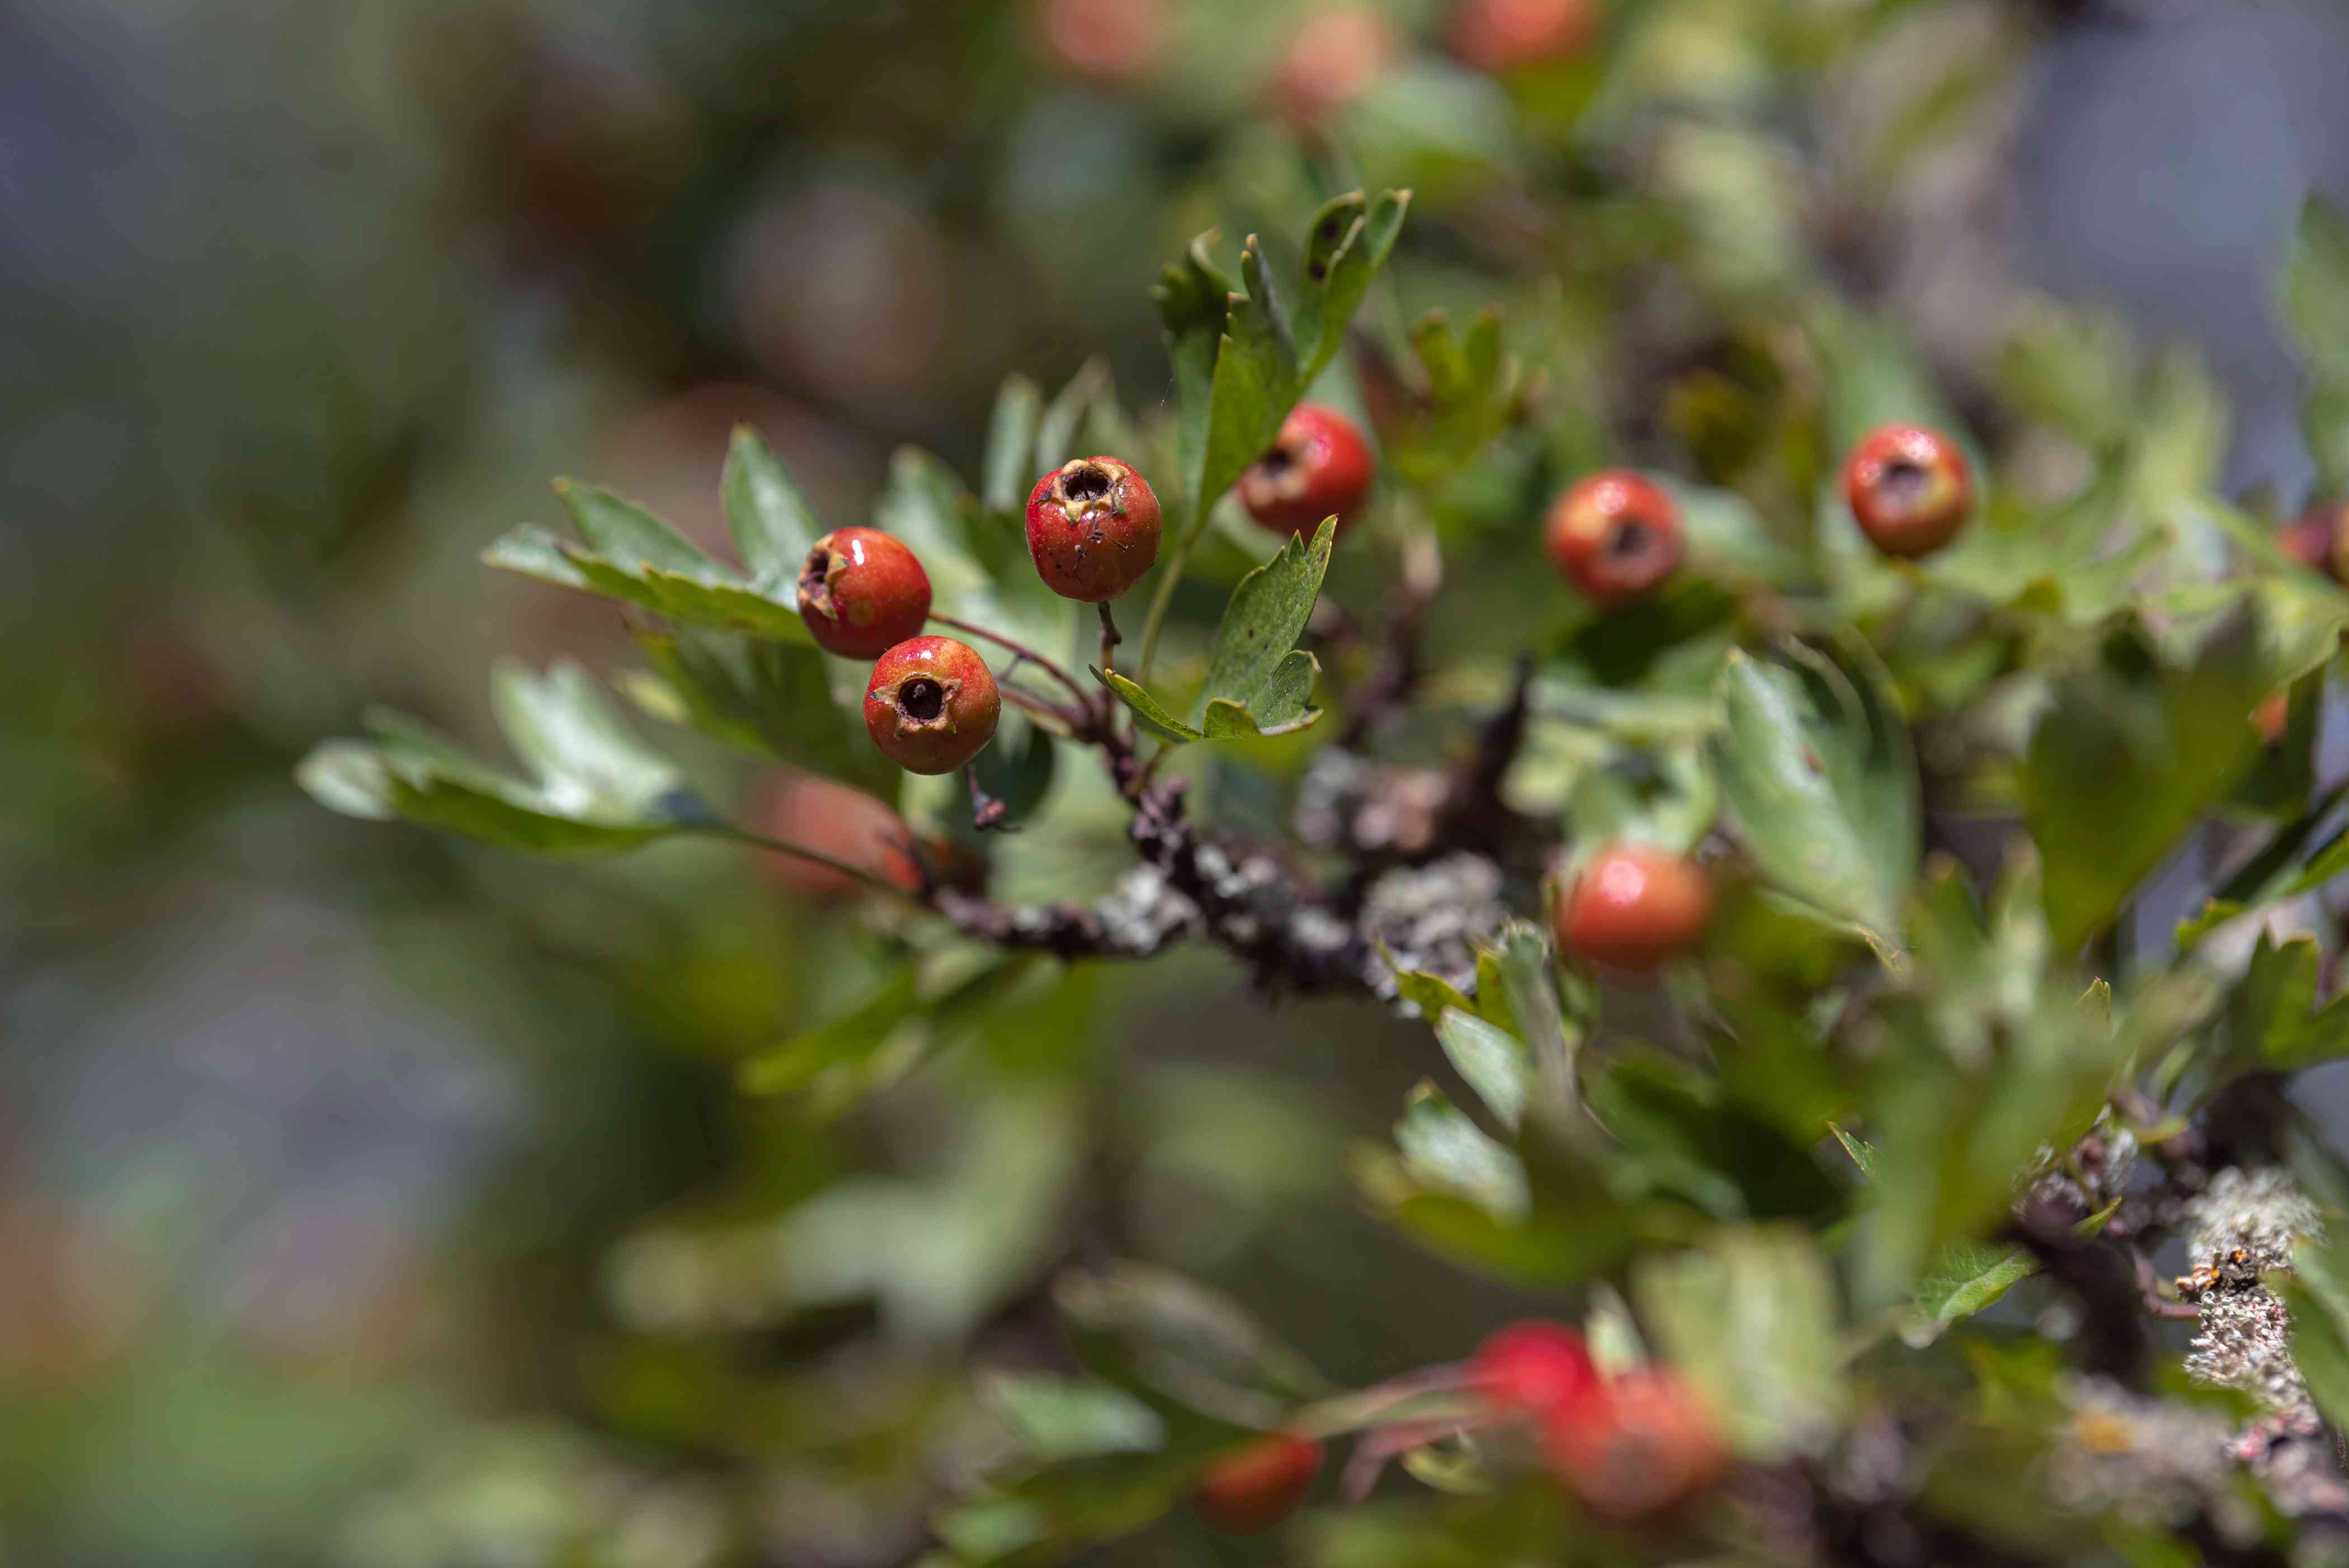 English hawthorn tree branch with small lobed leaves and red fruit closeup